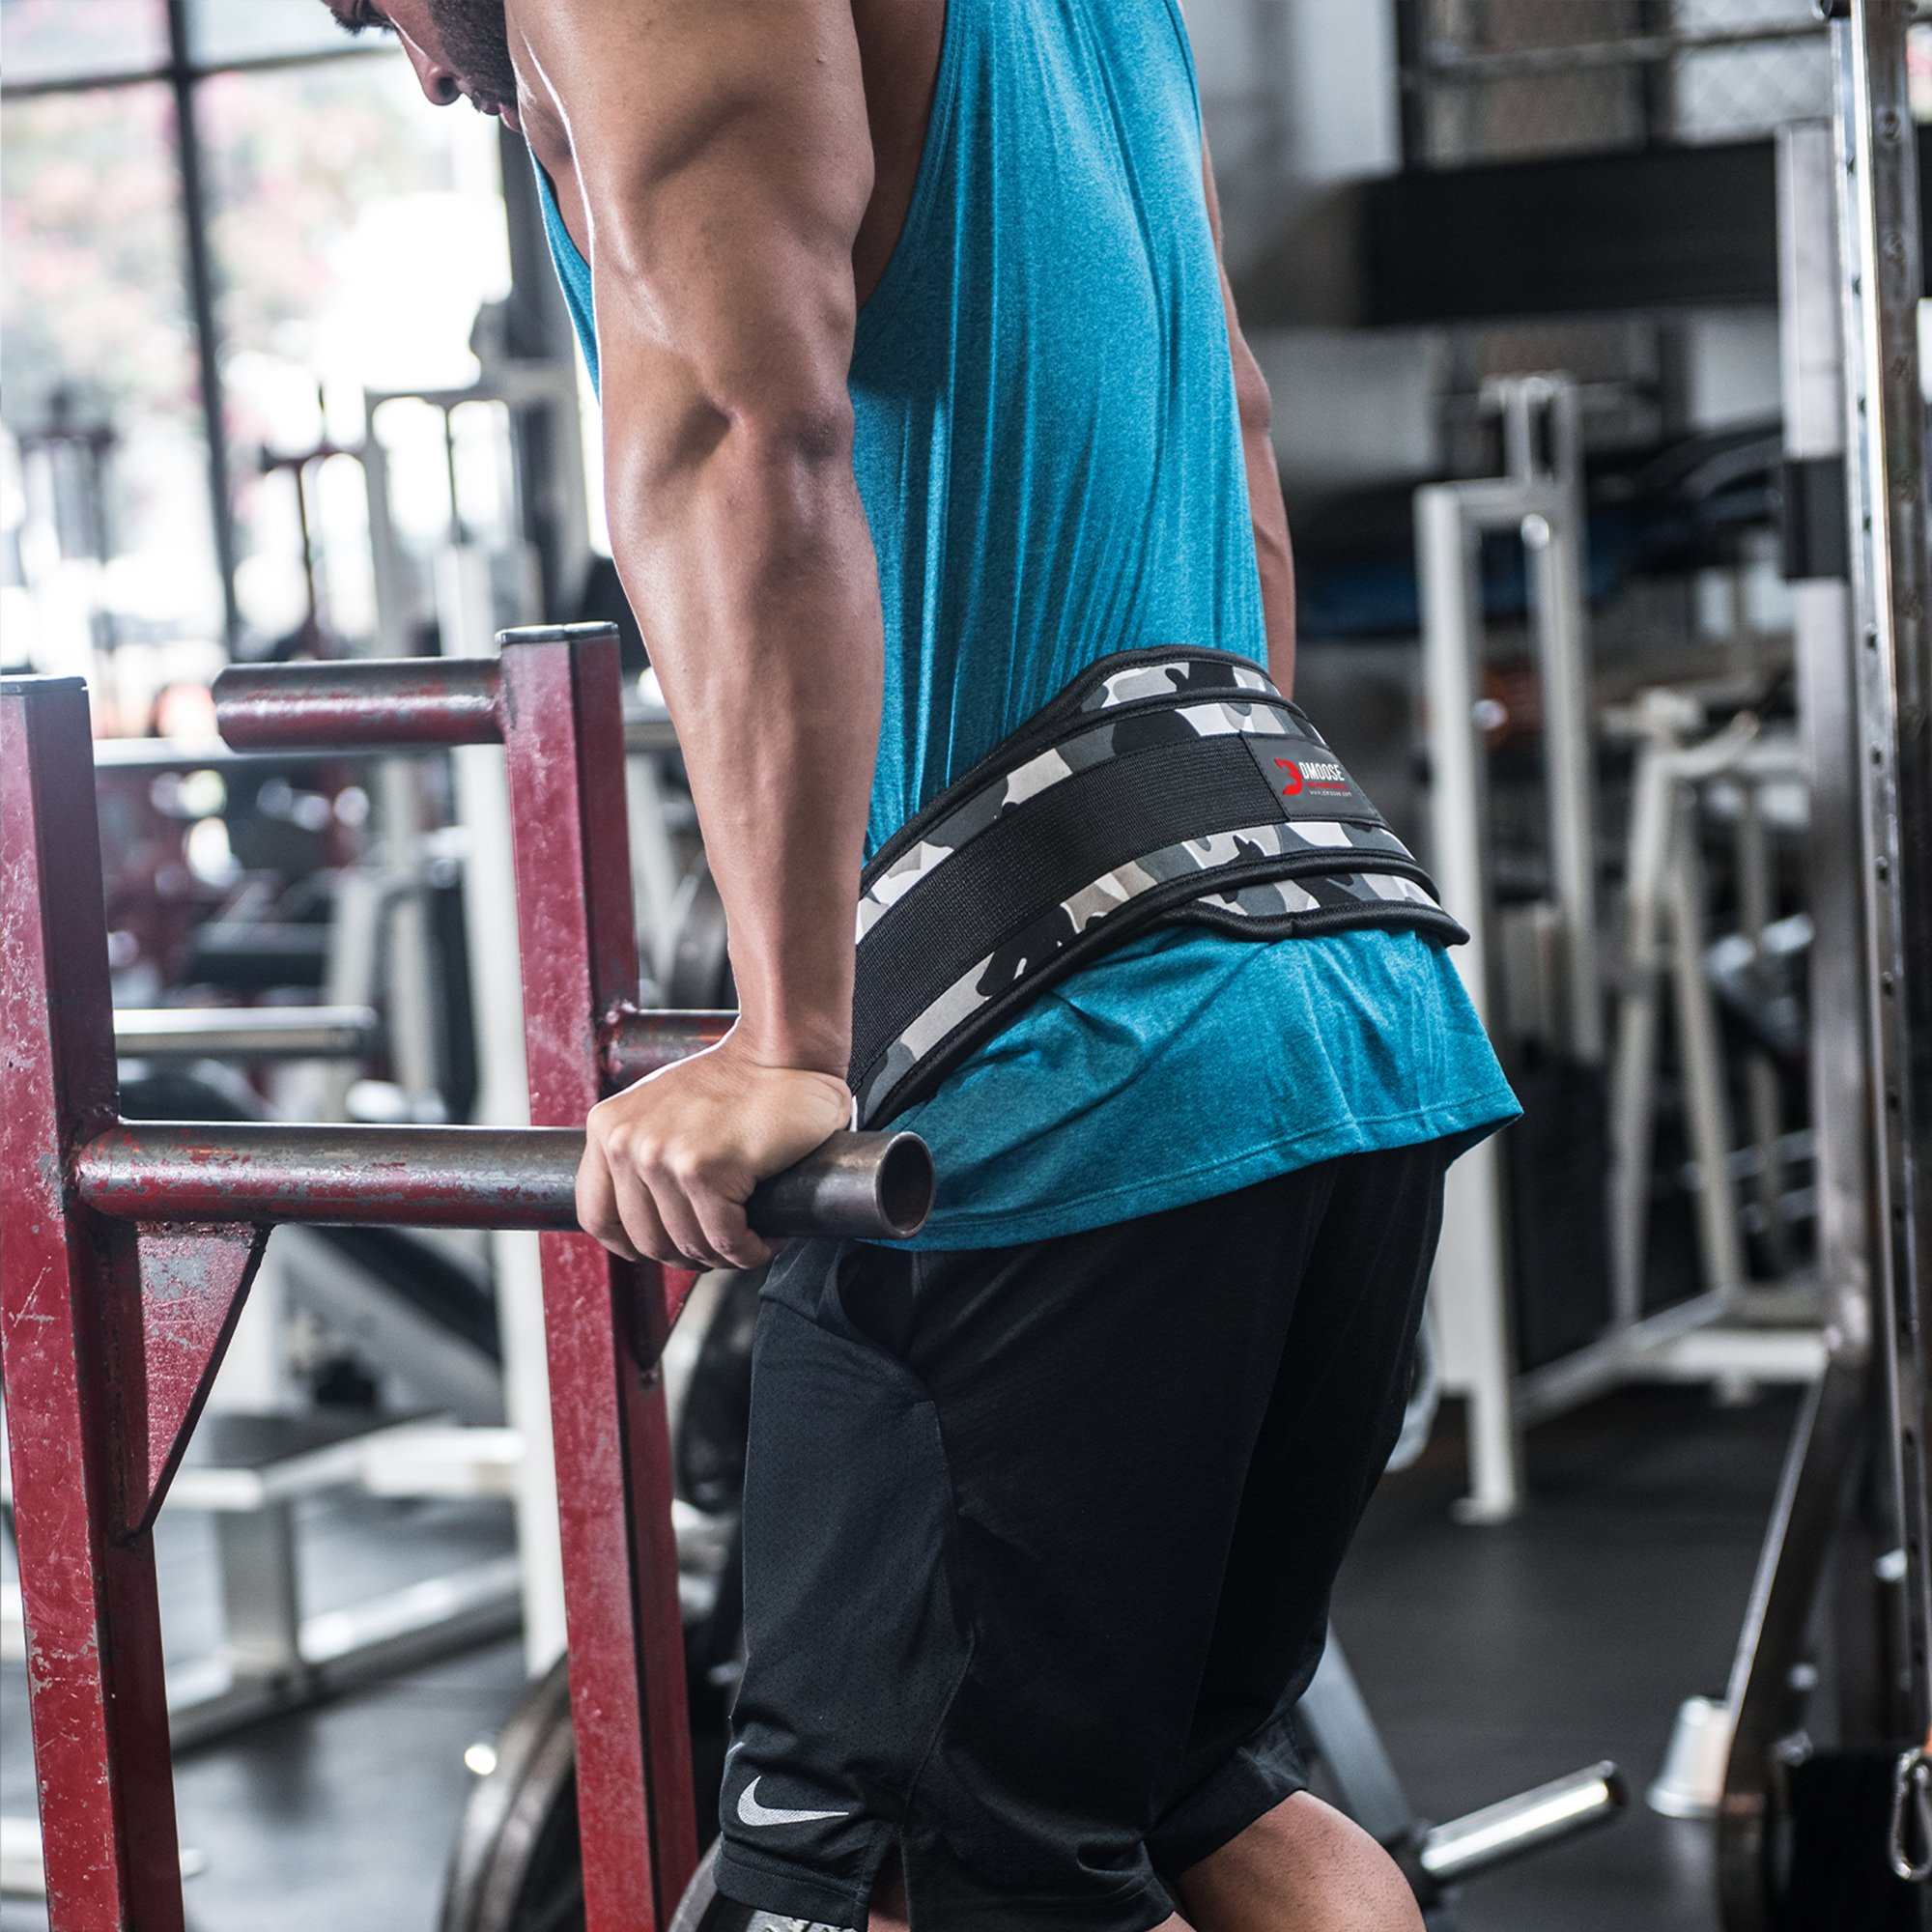 Details about  /Weight Lifting Belt With Metal Chain Pull-up Gym Equipment Bodybuilding Exercise